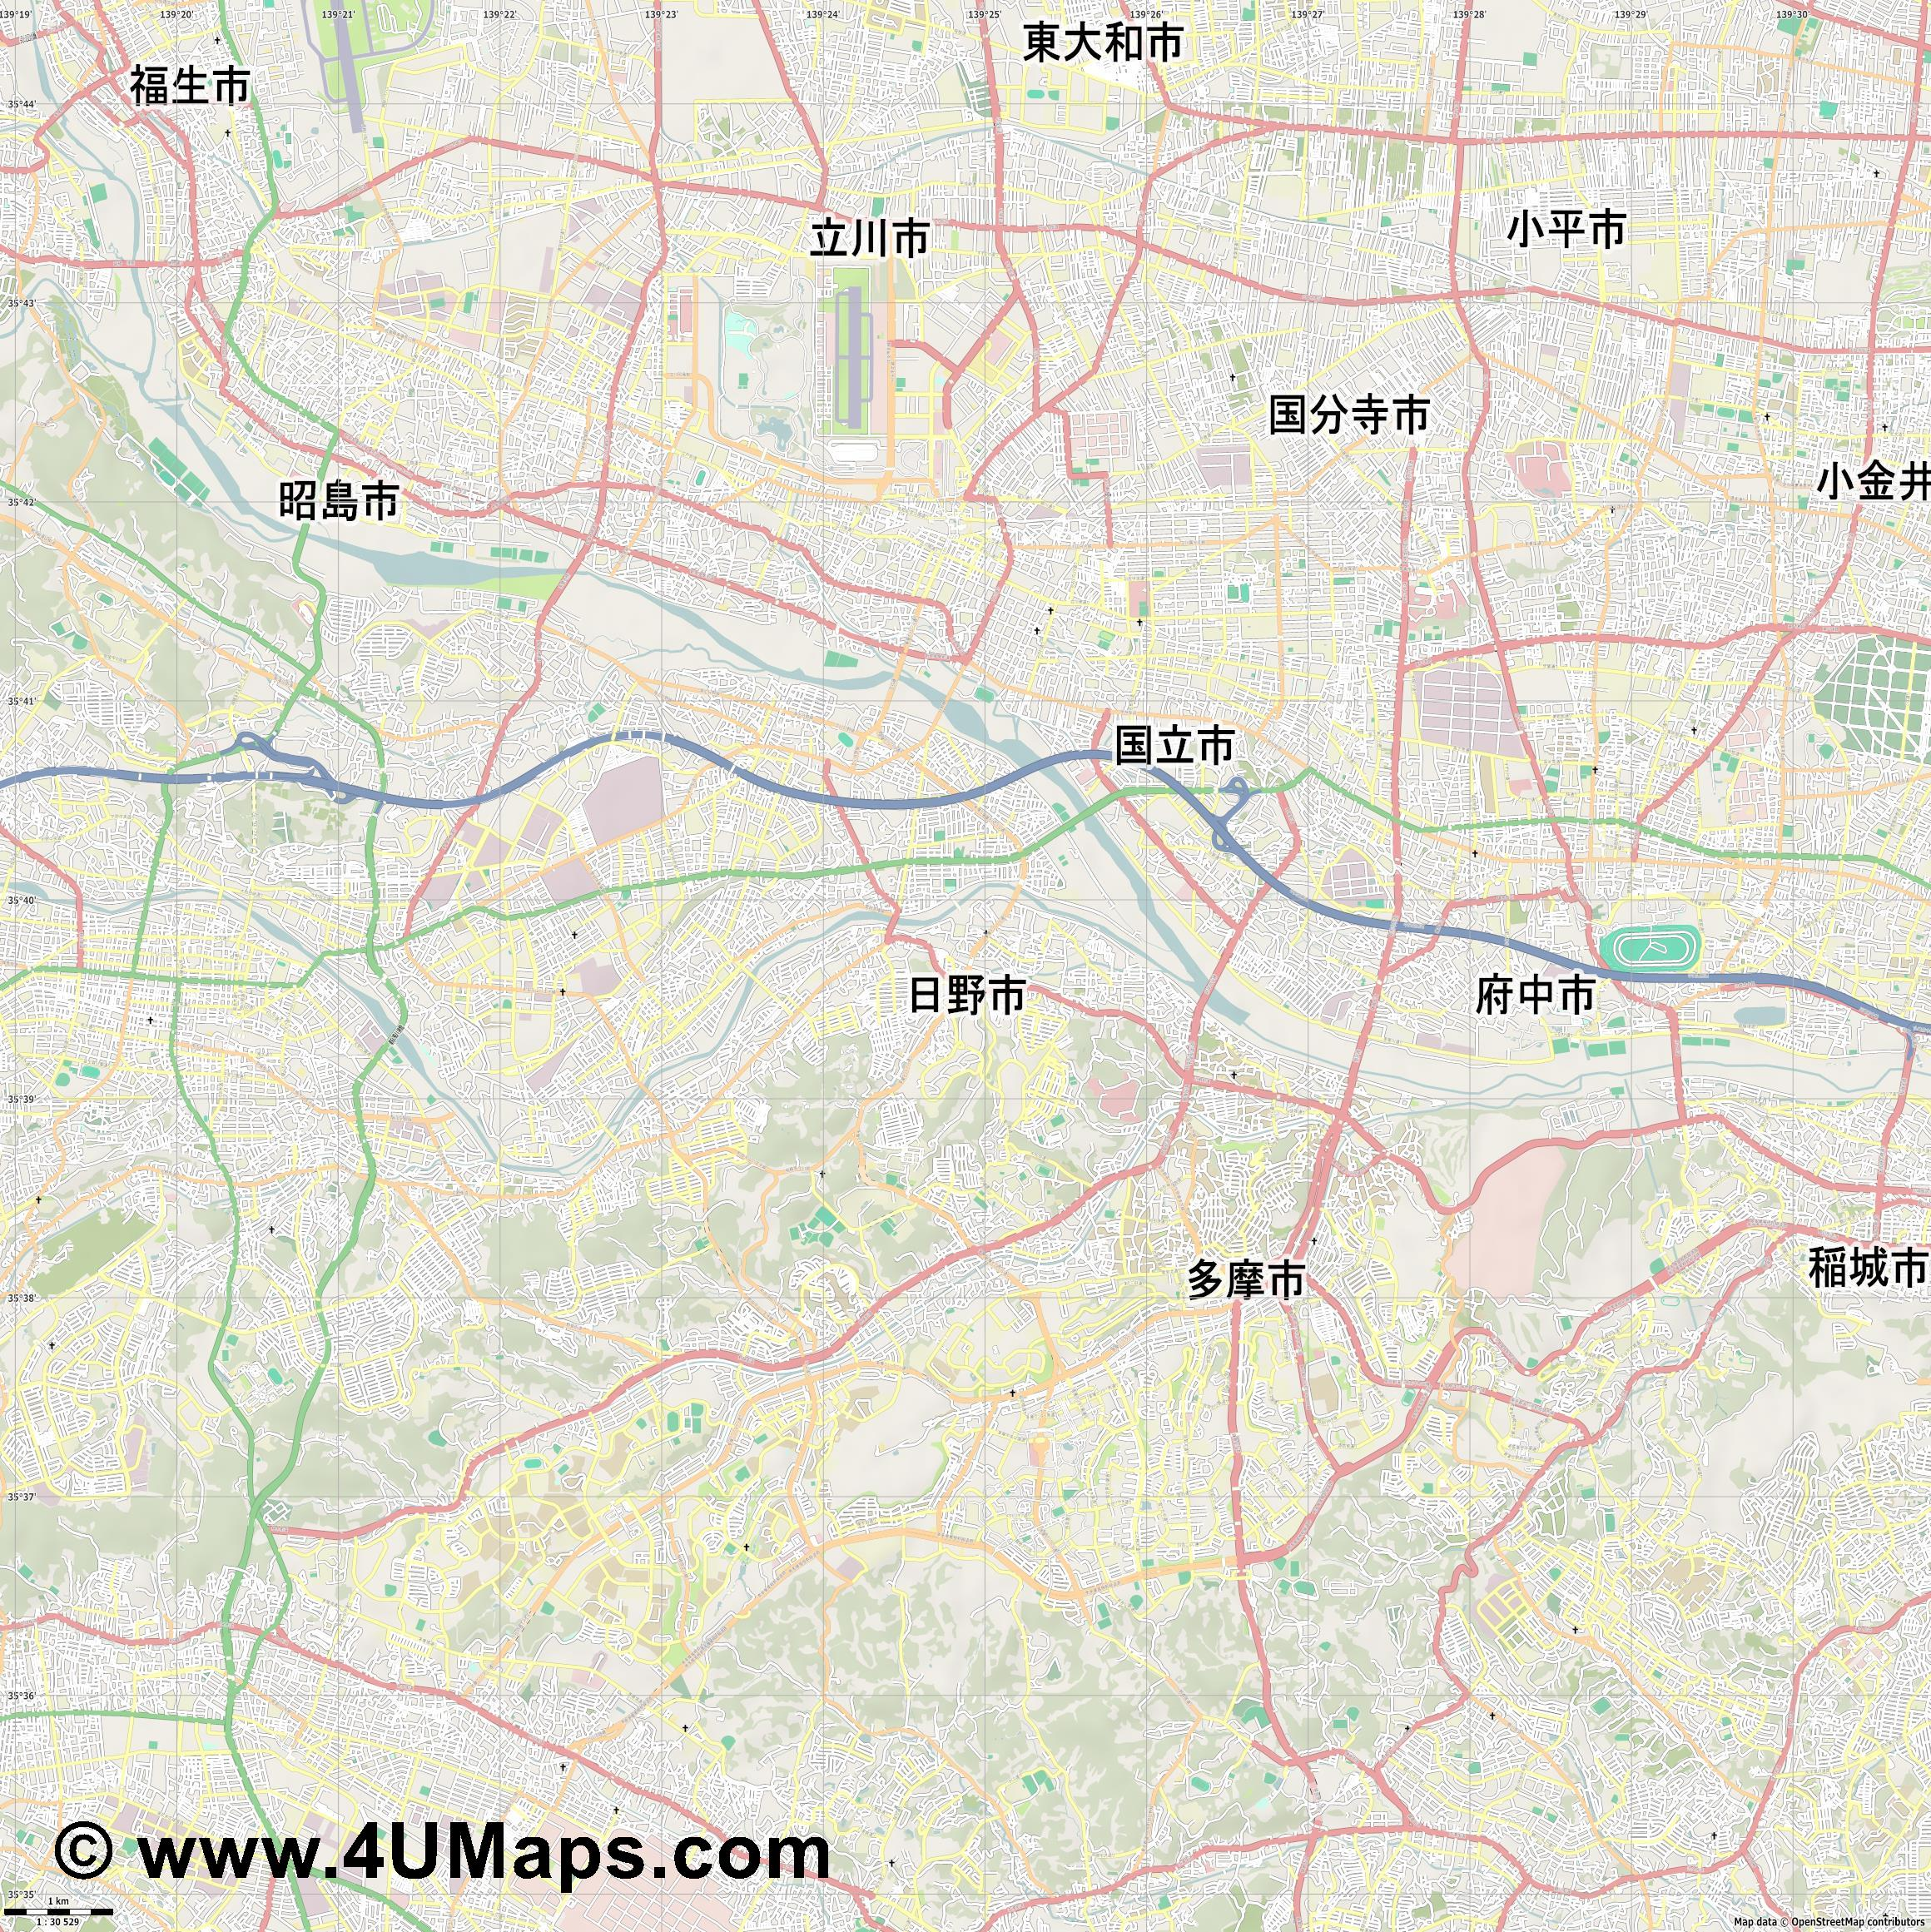 日野市  Hino   jpg high detail, large area preview vector city map